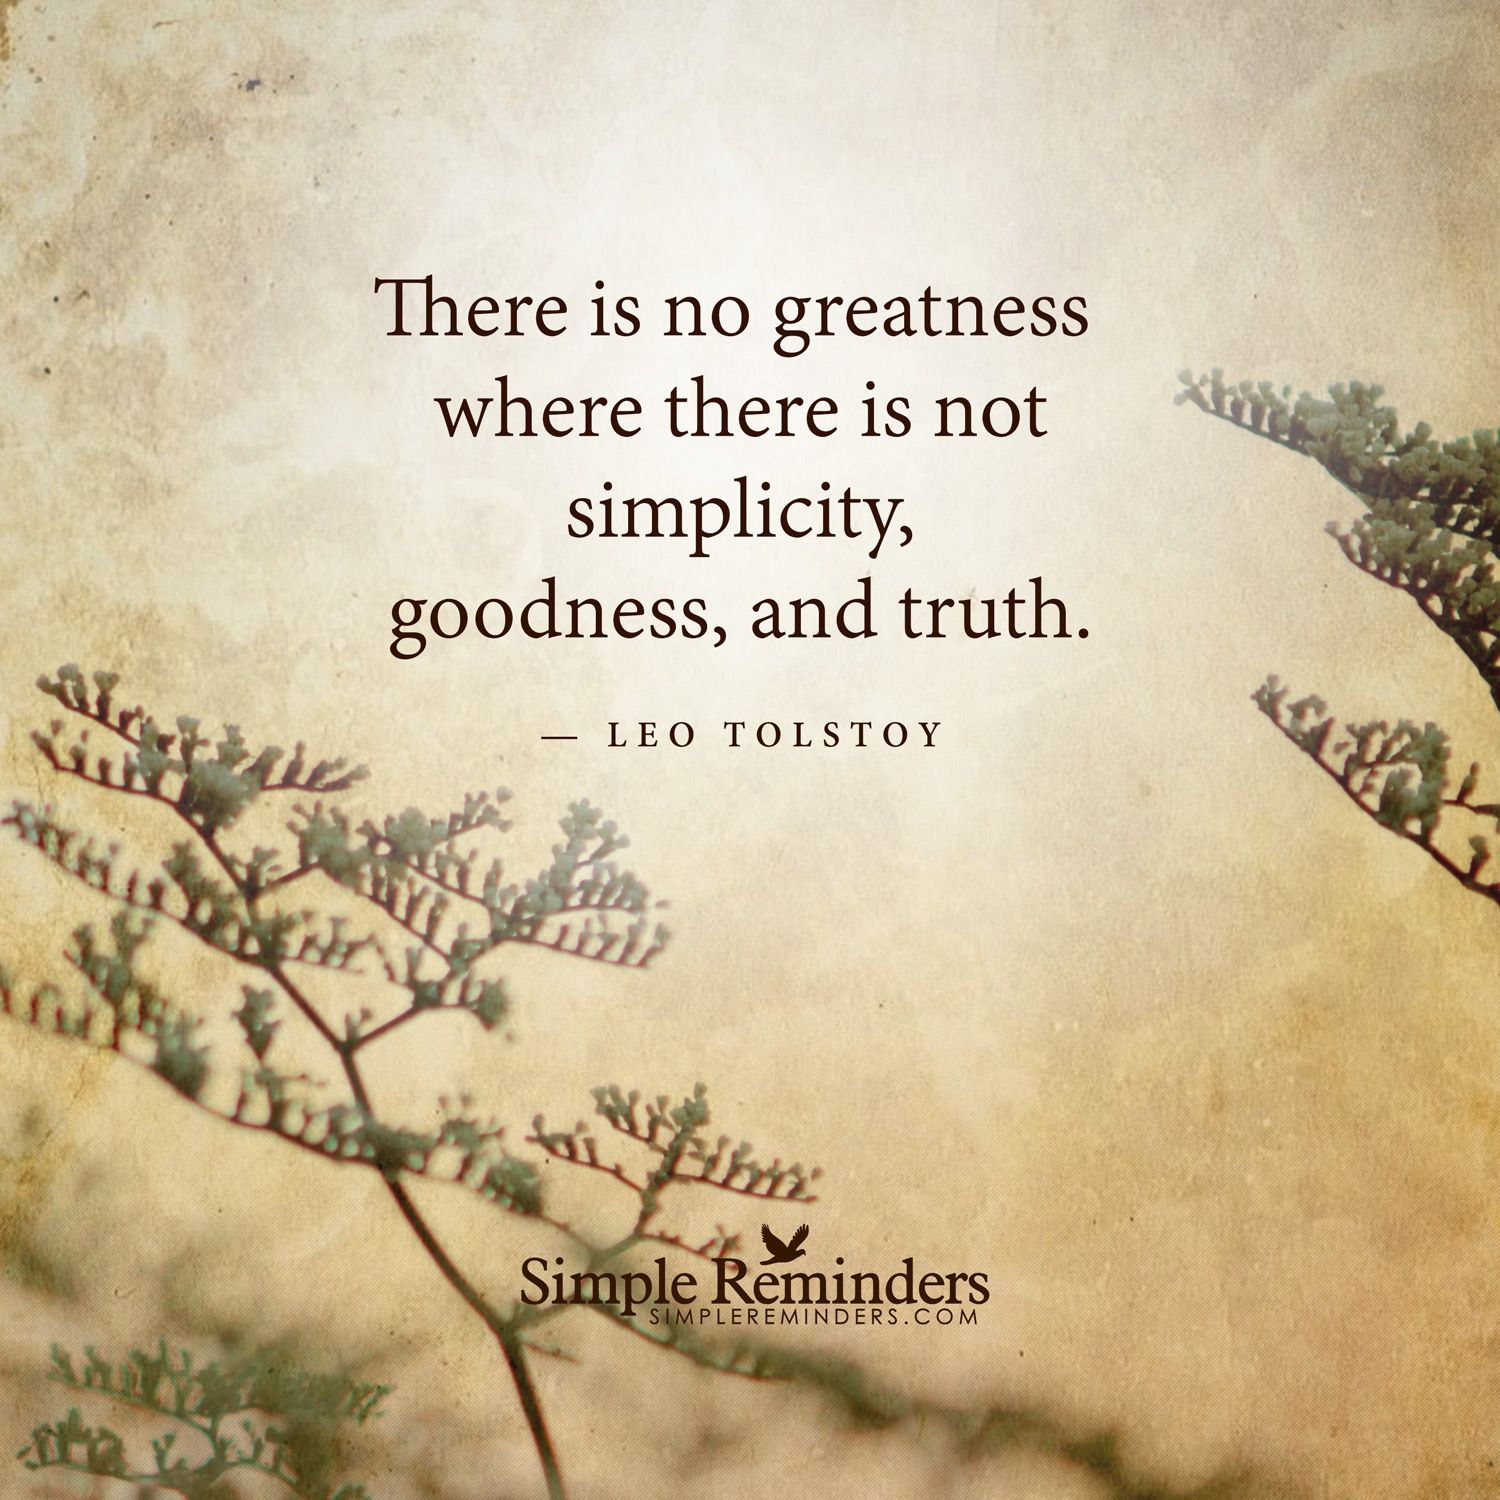 Greatness Can Be Found In Simplicity By Leo Tolstoy Simplicity Quotes Tolstoy Quotes Leo Tolstoy Quotes